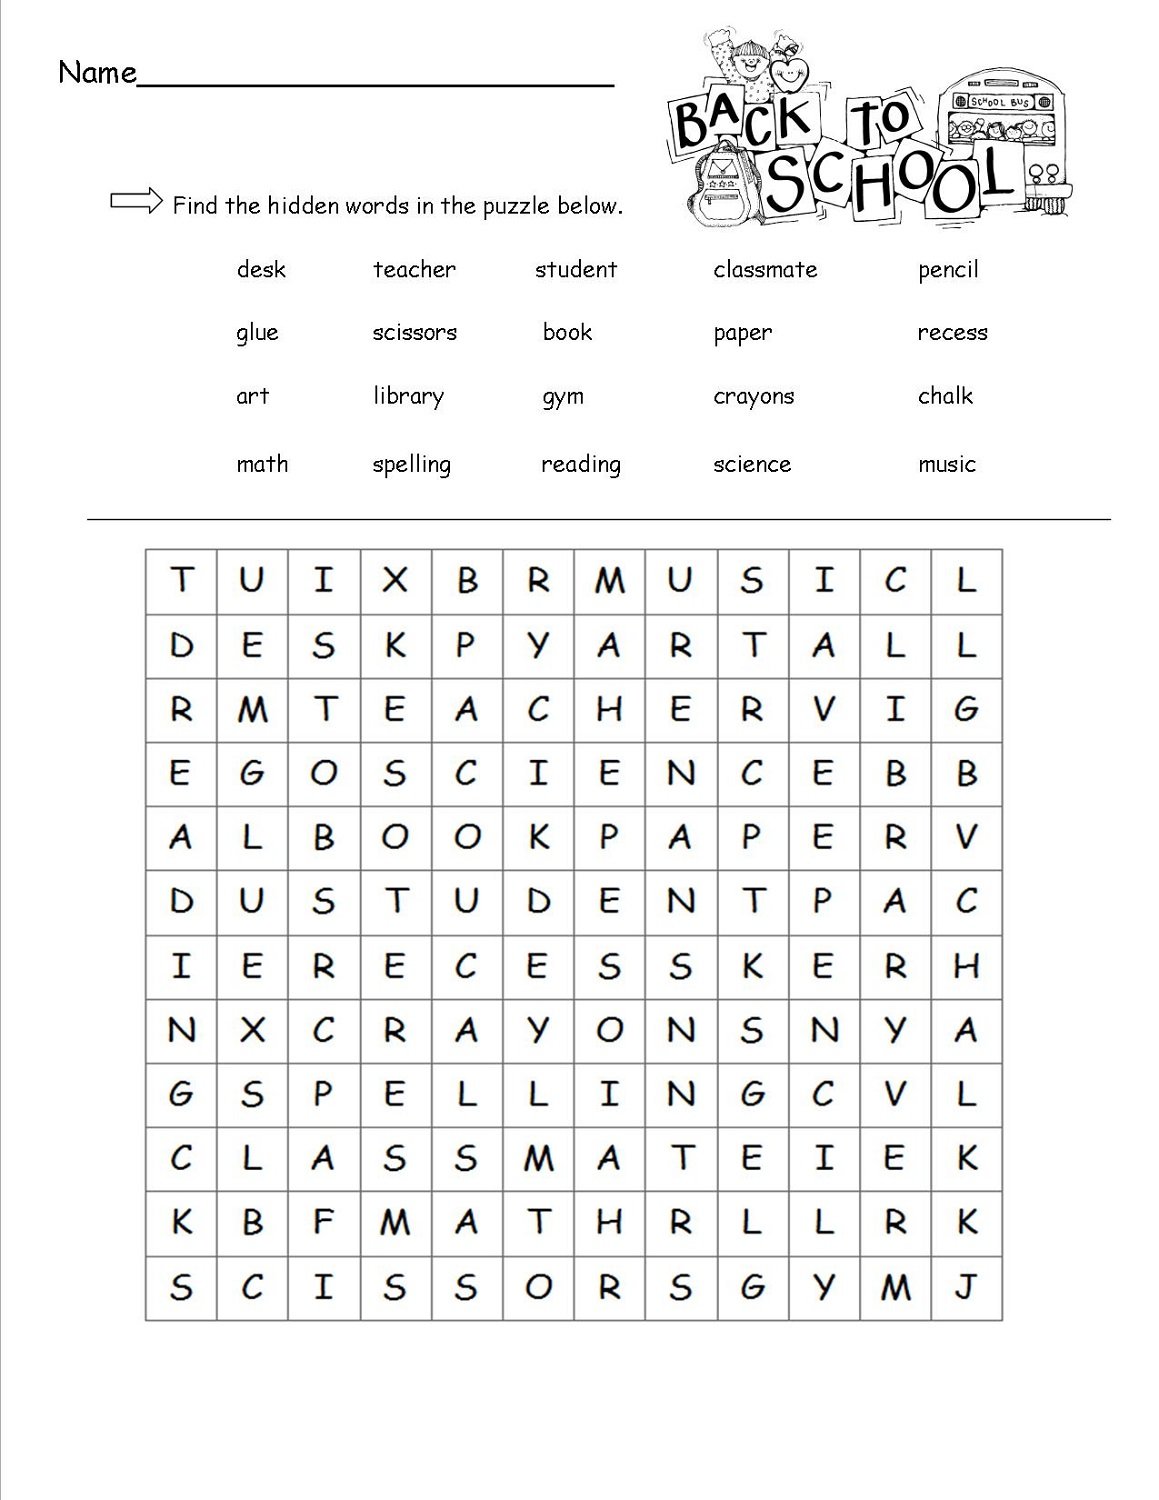 17 Back To School Word Search Printables